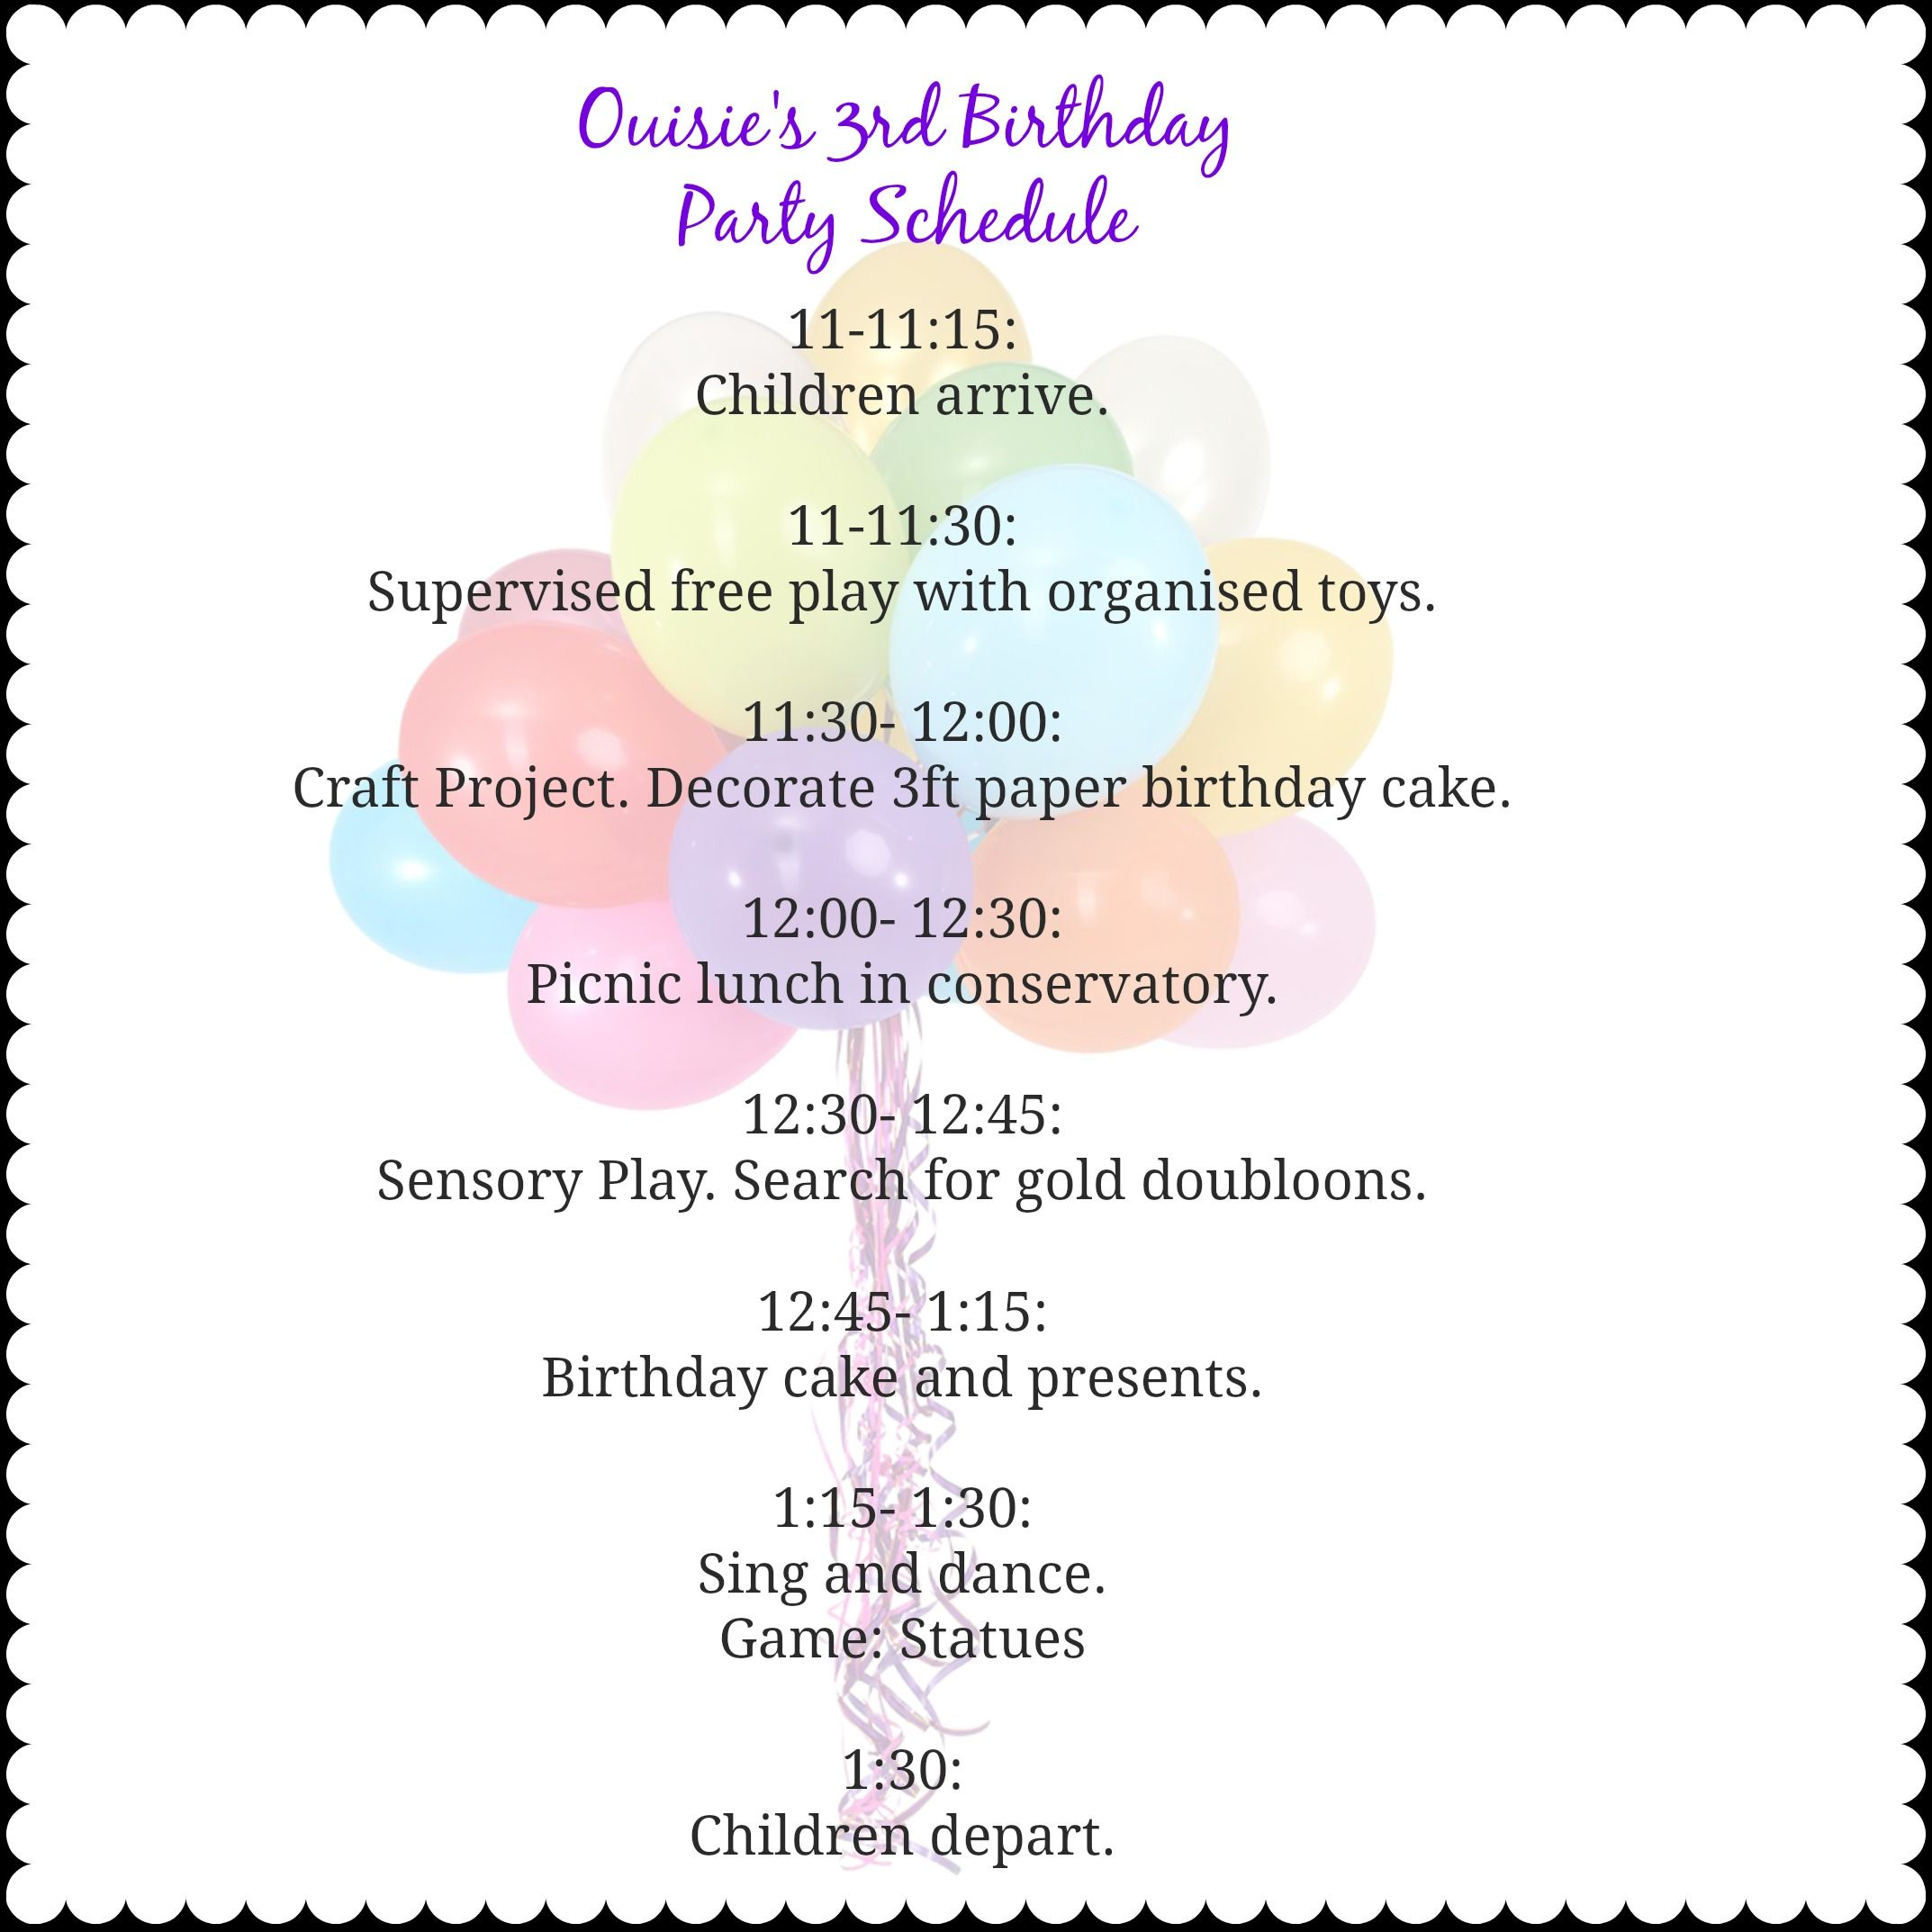 Birthday Party Schedule Google Search Itinerary Template